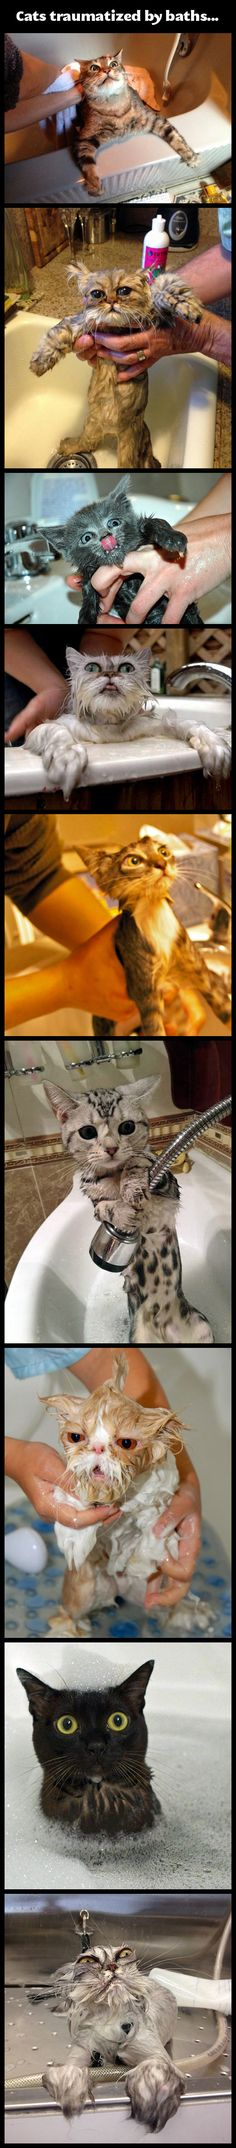 Cats traumatized by baths� It's not the bath; it's the lack of control!